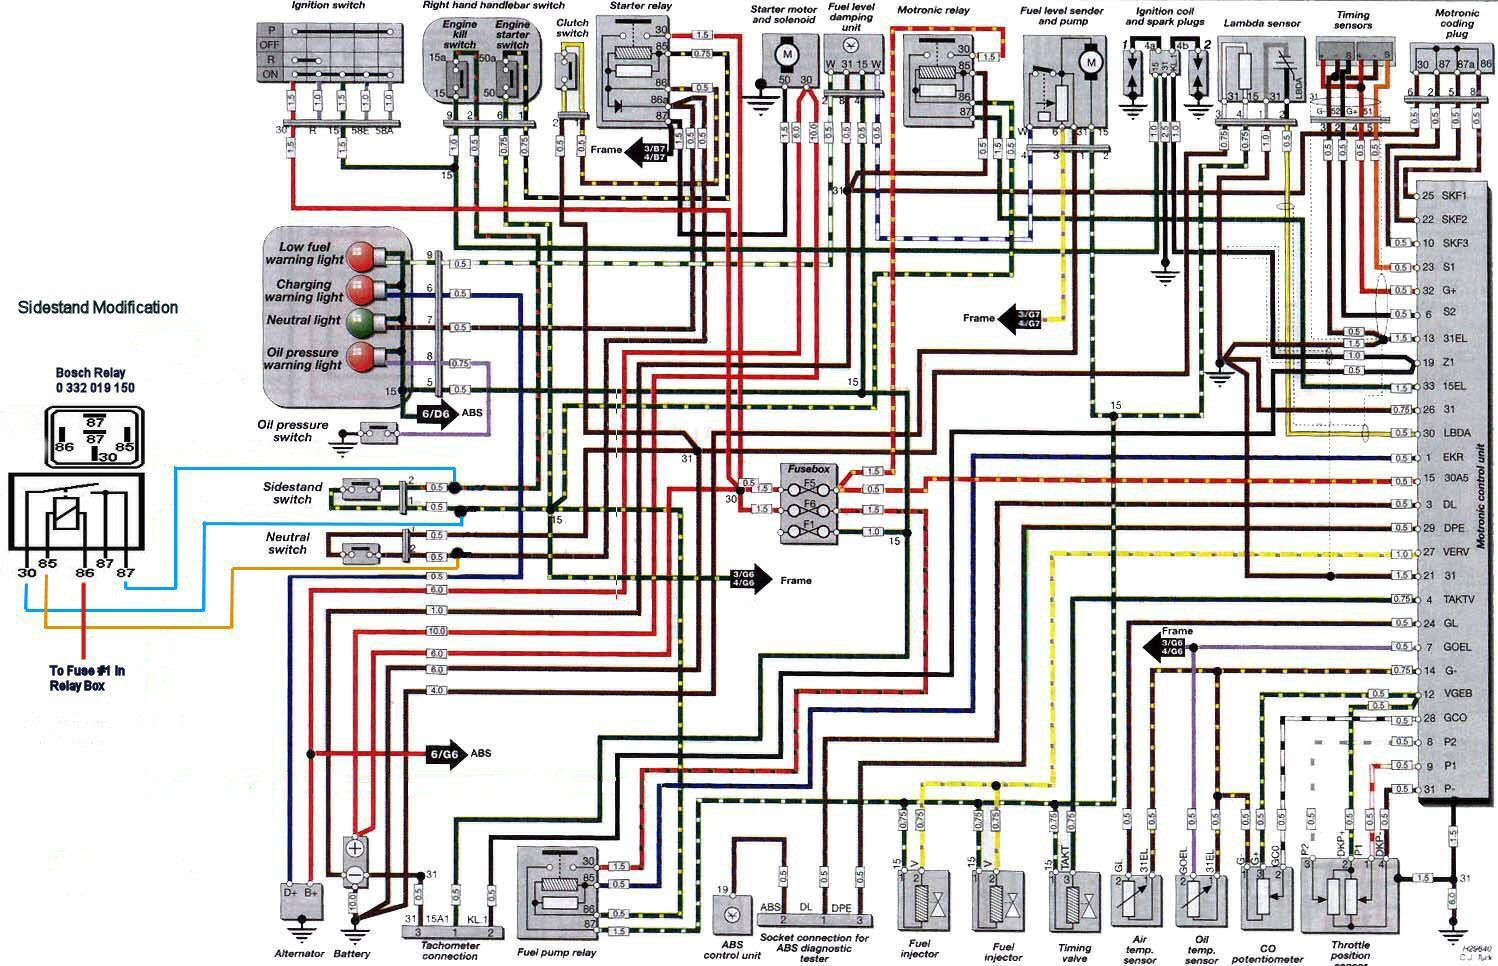 Bmw r1150r electrical wiring diagram #1 | Bike stuff | Pinterest